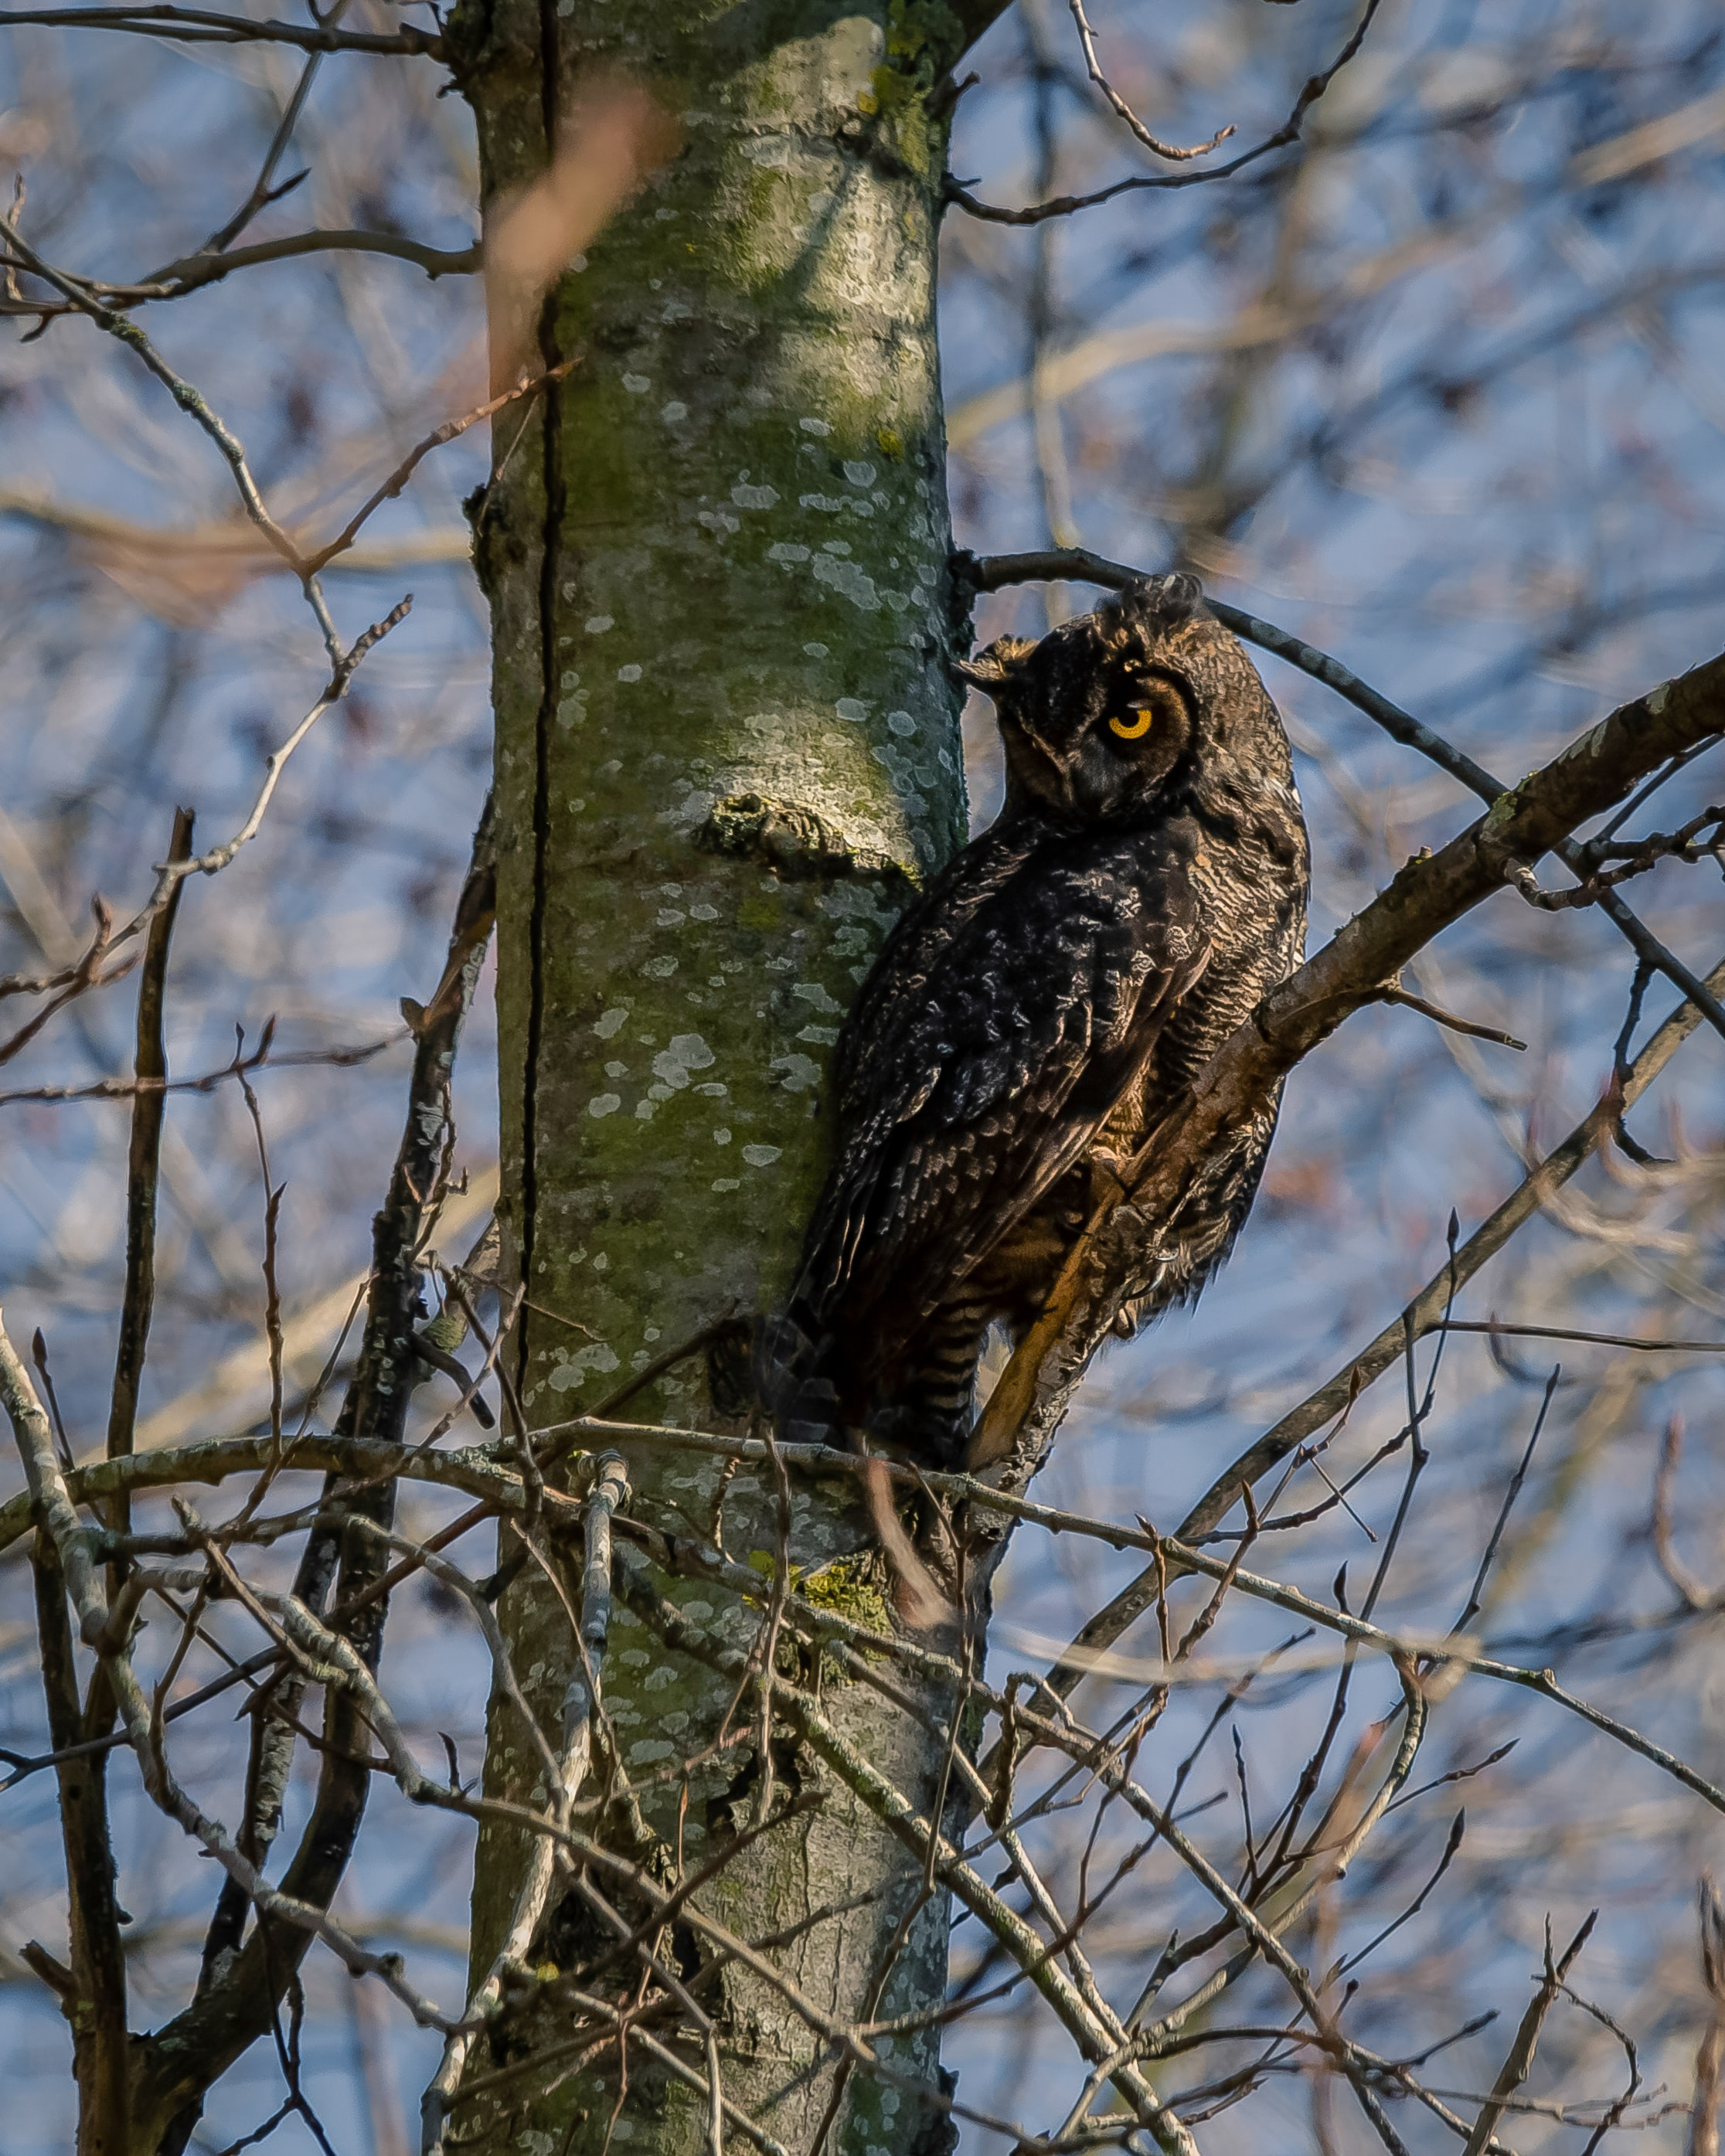 95058 download wallpaper Animals, Owl, Bird, Sight, Opinion, Wood, Tree screensavers and pictures for free